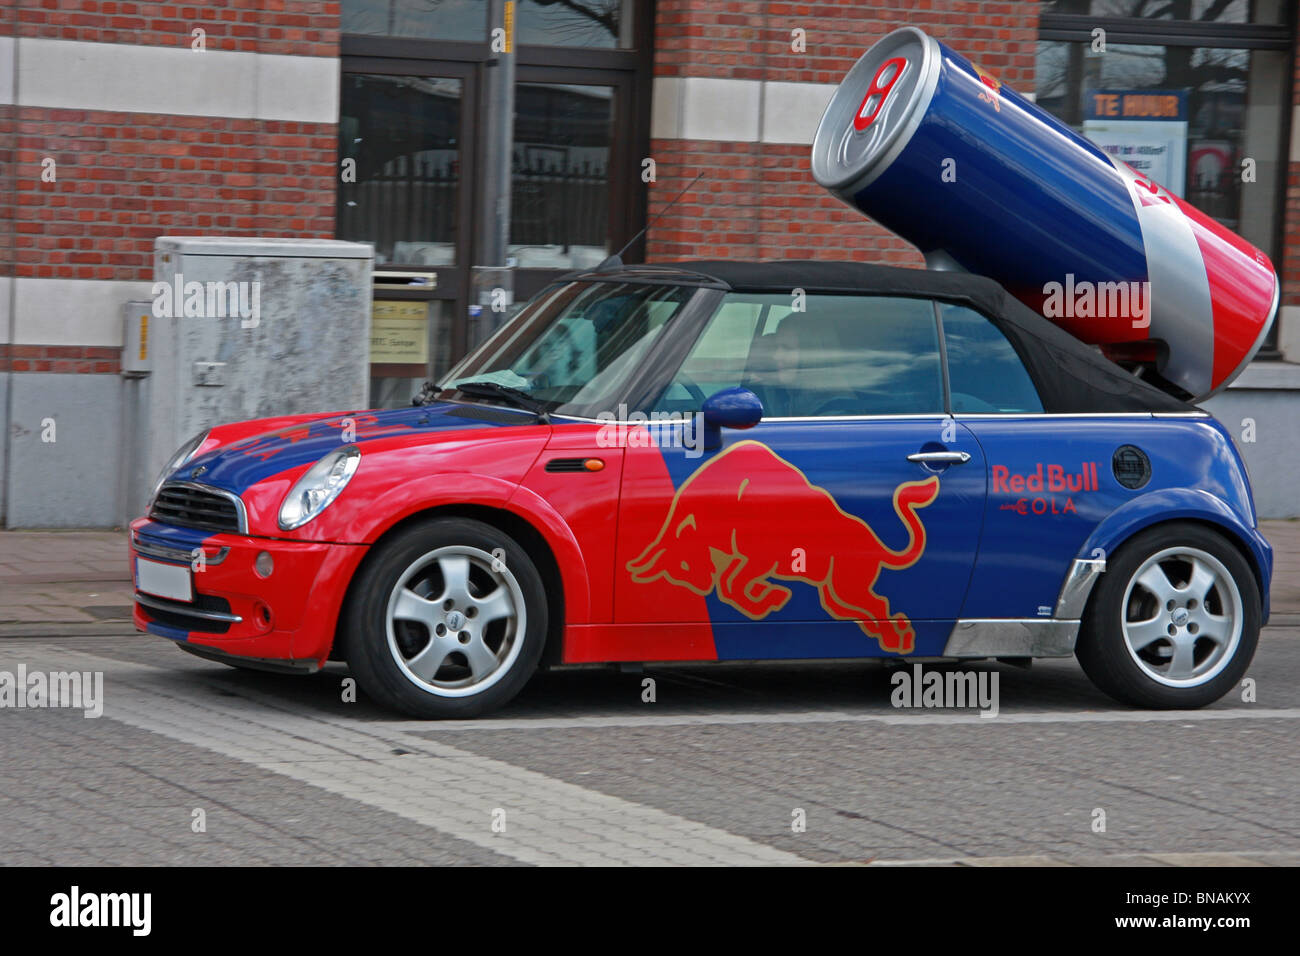 Belgium, Antwerp Red Bull car - Stock Image